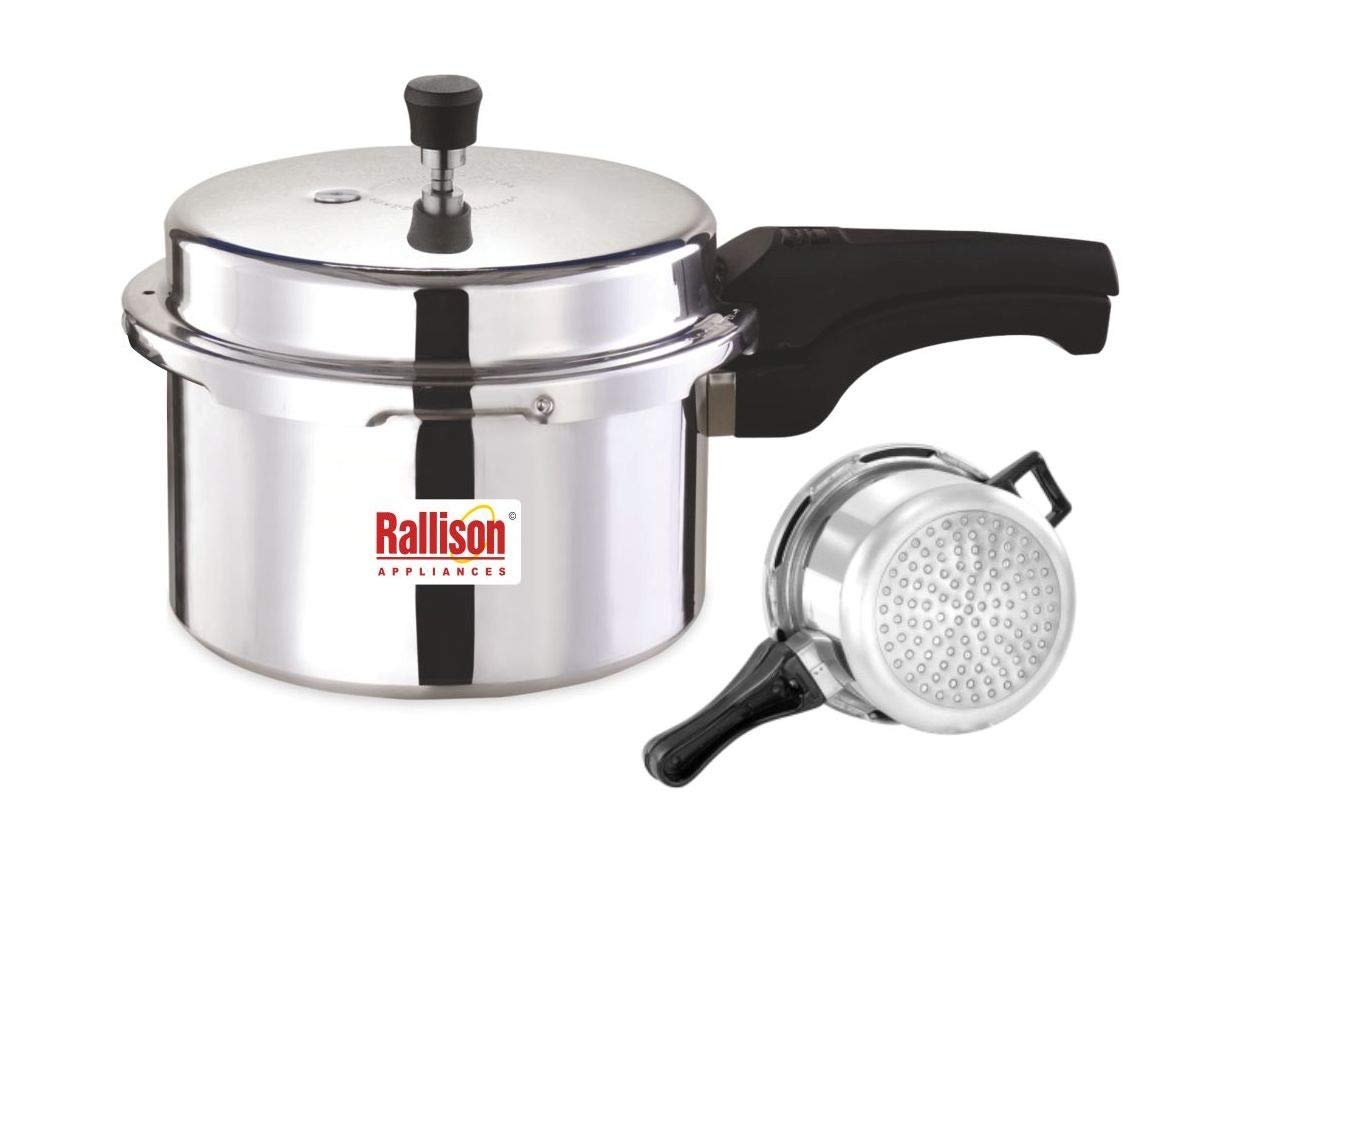 Buy Rallison Appliances Grand Pressure Induction Base Cooker 3 Ltr Aluminium Silver Online At Low Prices In India Amazon In